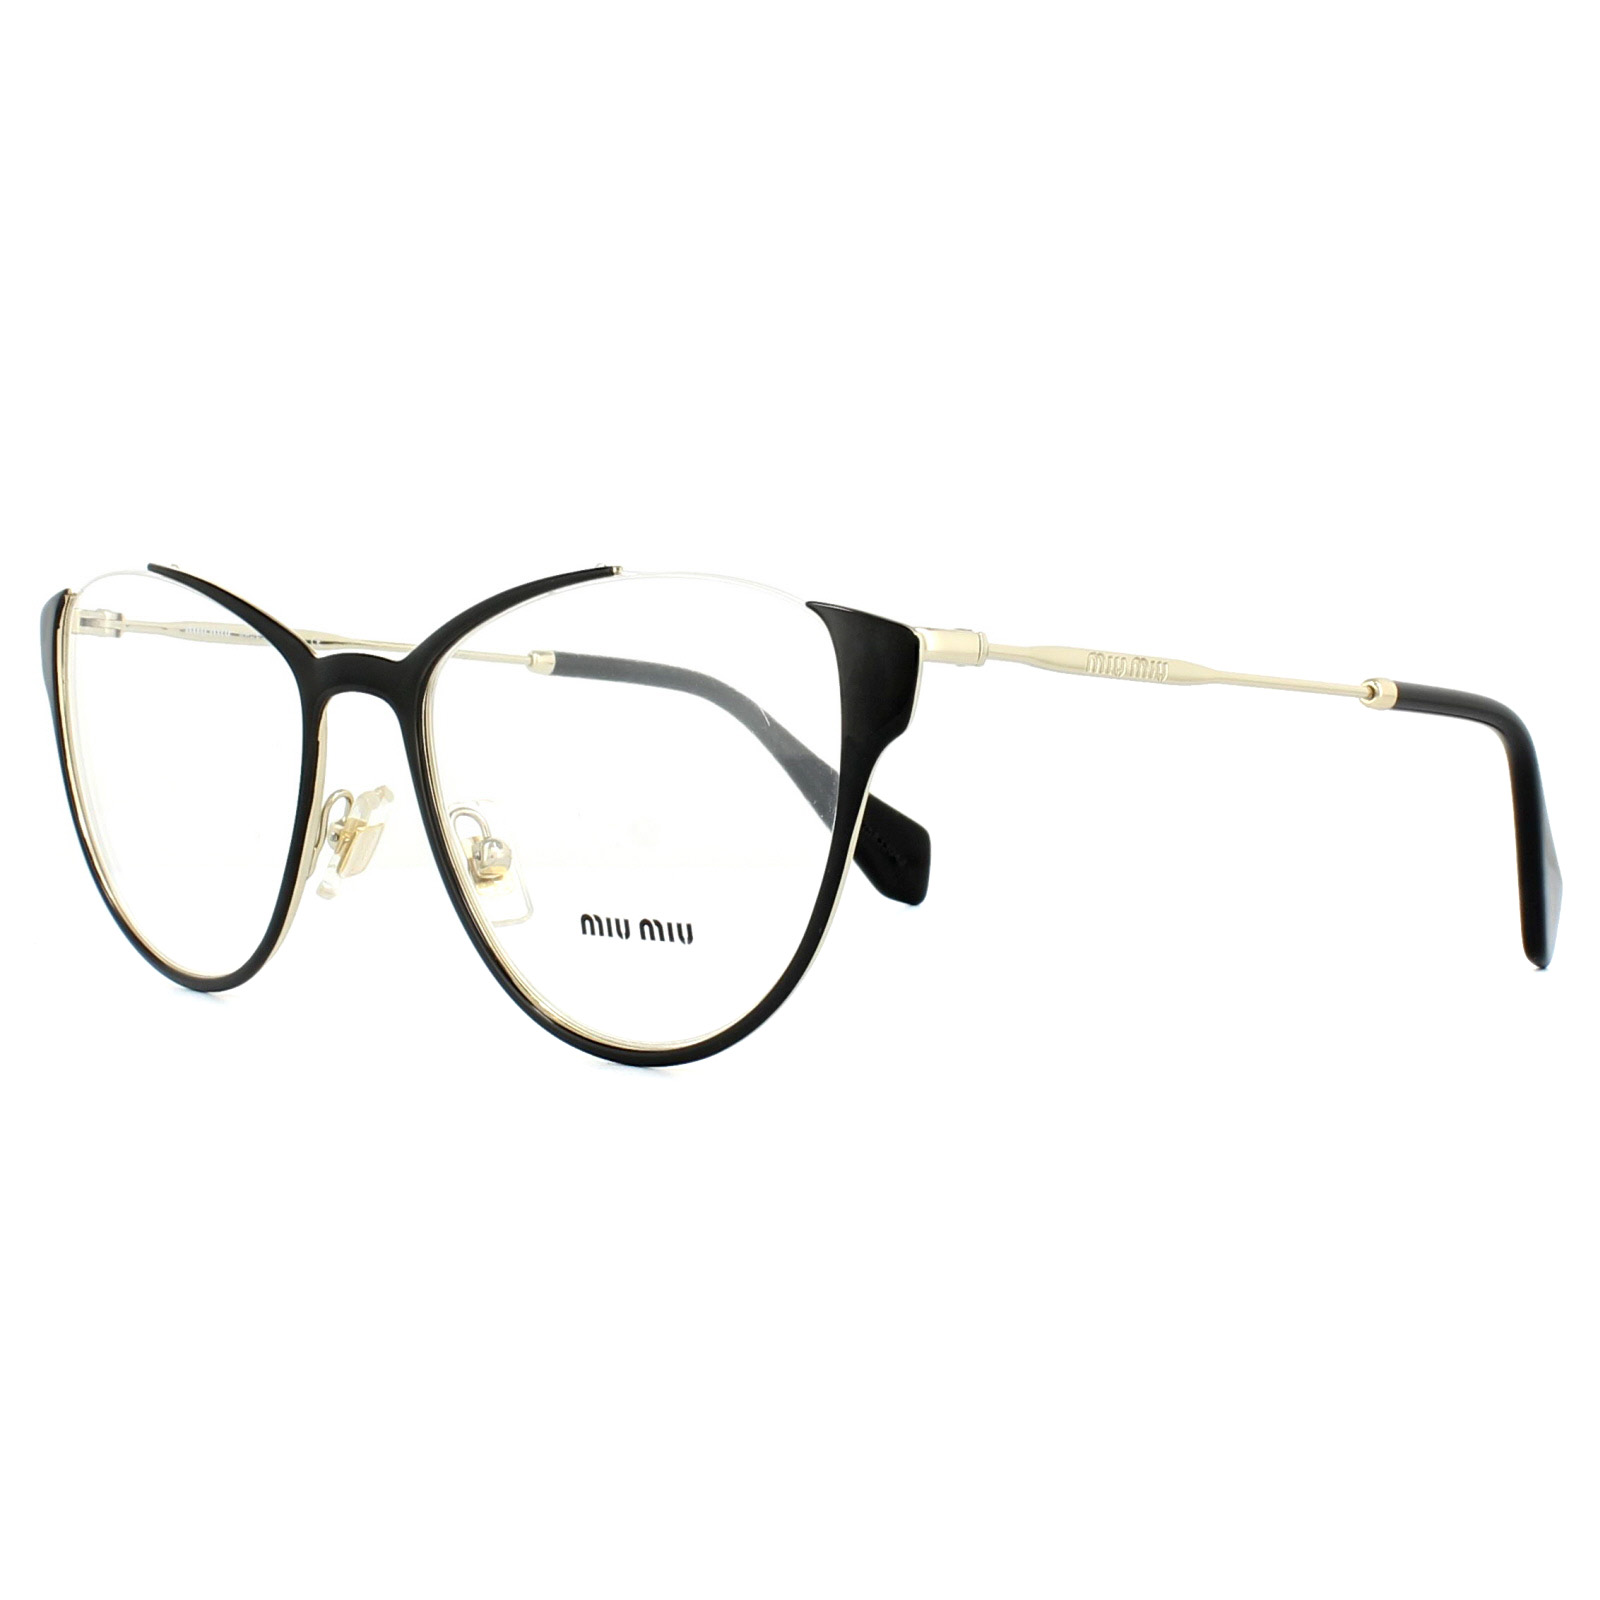 e305a6add47a Miu Miu Glasses Frames MU51OV QE31O1 Black 53mm Womens 8053672506624 ...